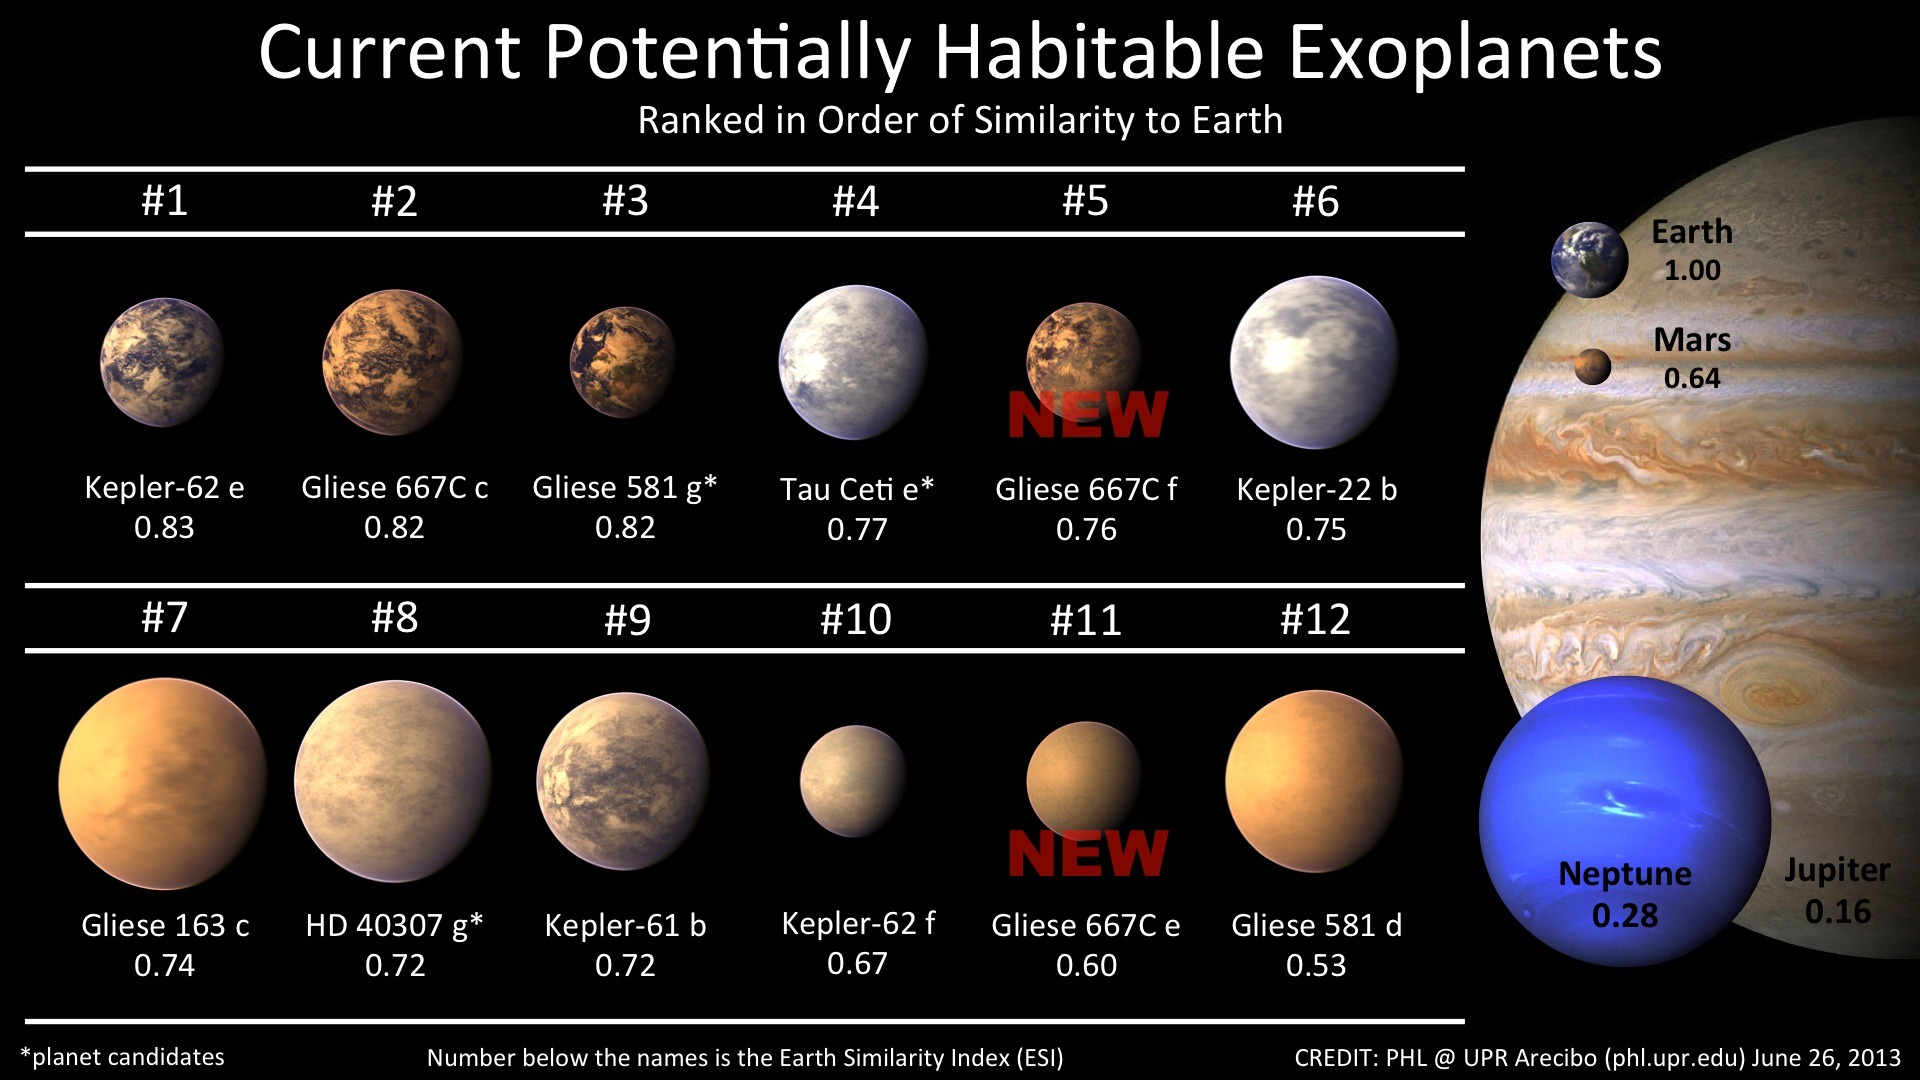 https://i0.wp.com/www.gurumed.org/wp-content/uploads/2013/06/Plante-habitable-Gliese667C.jpg